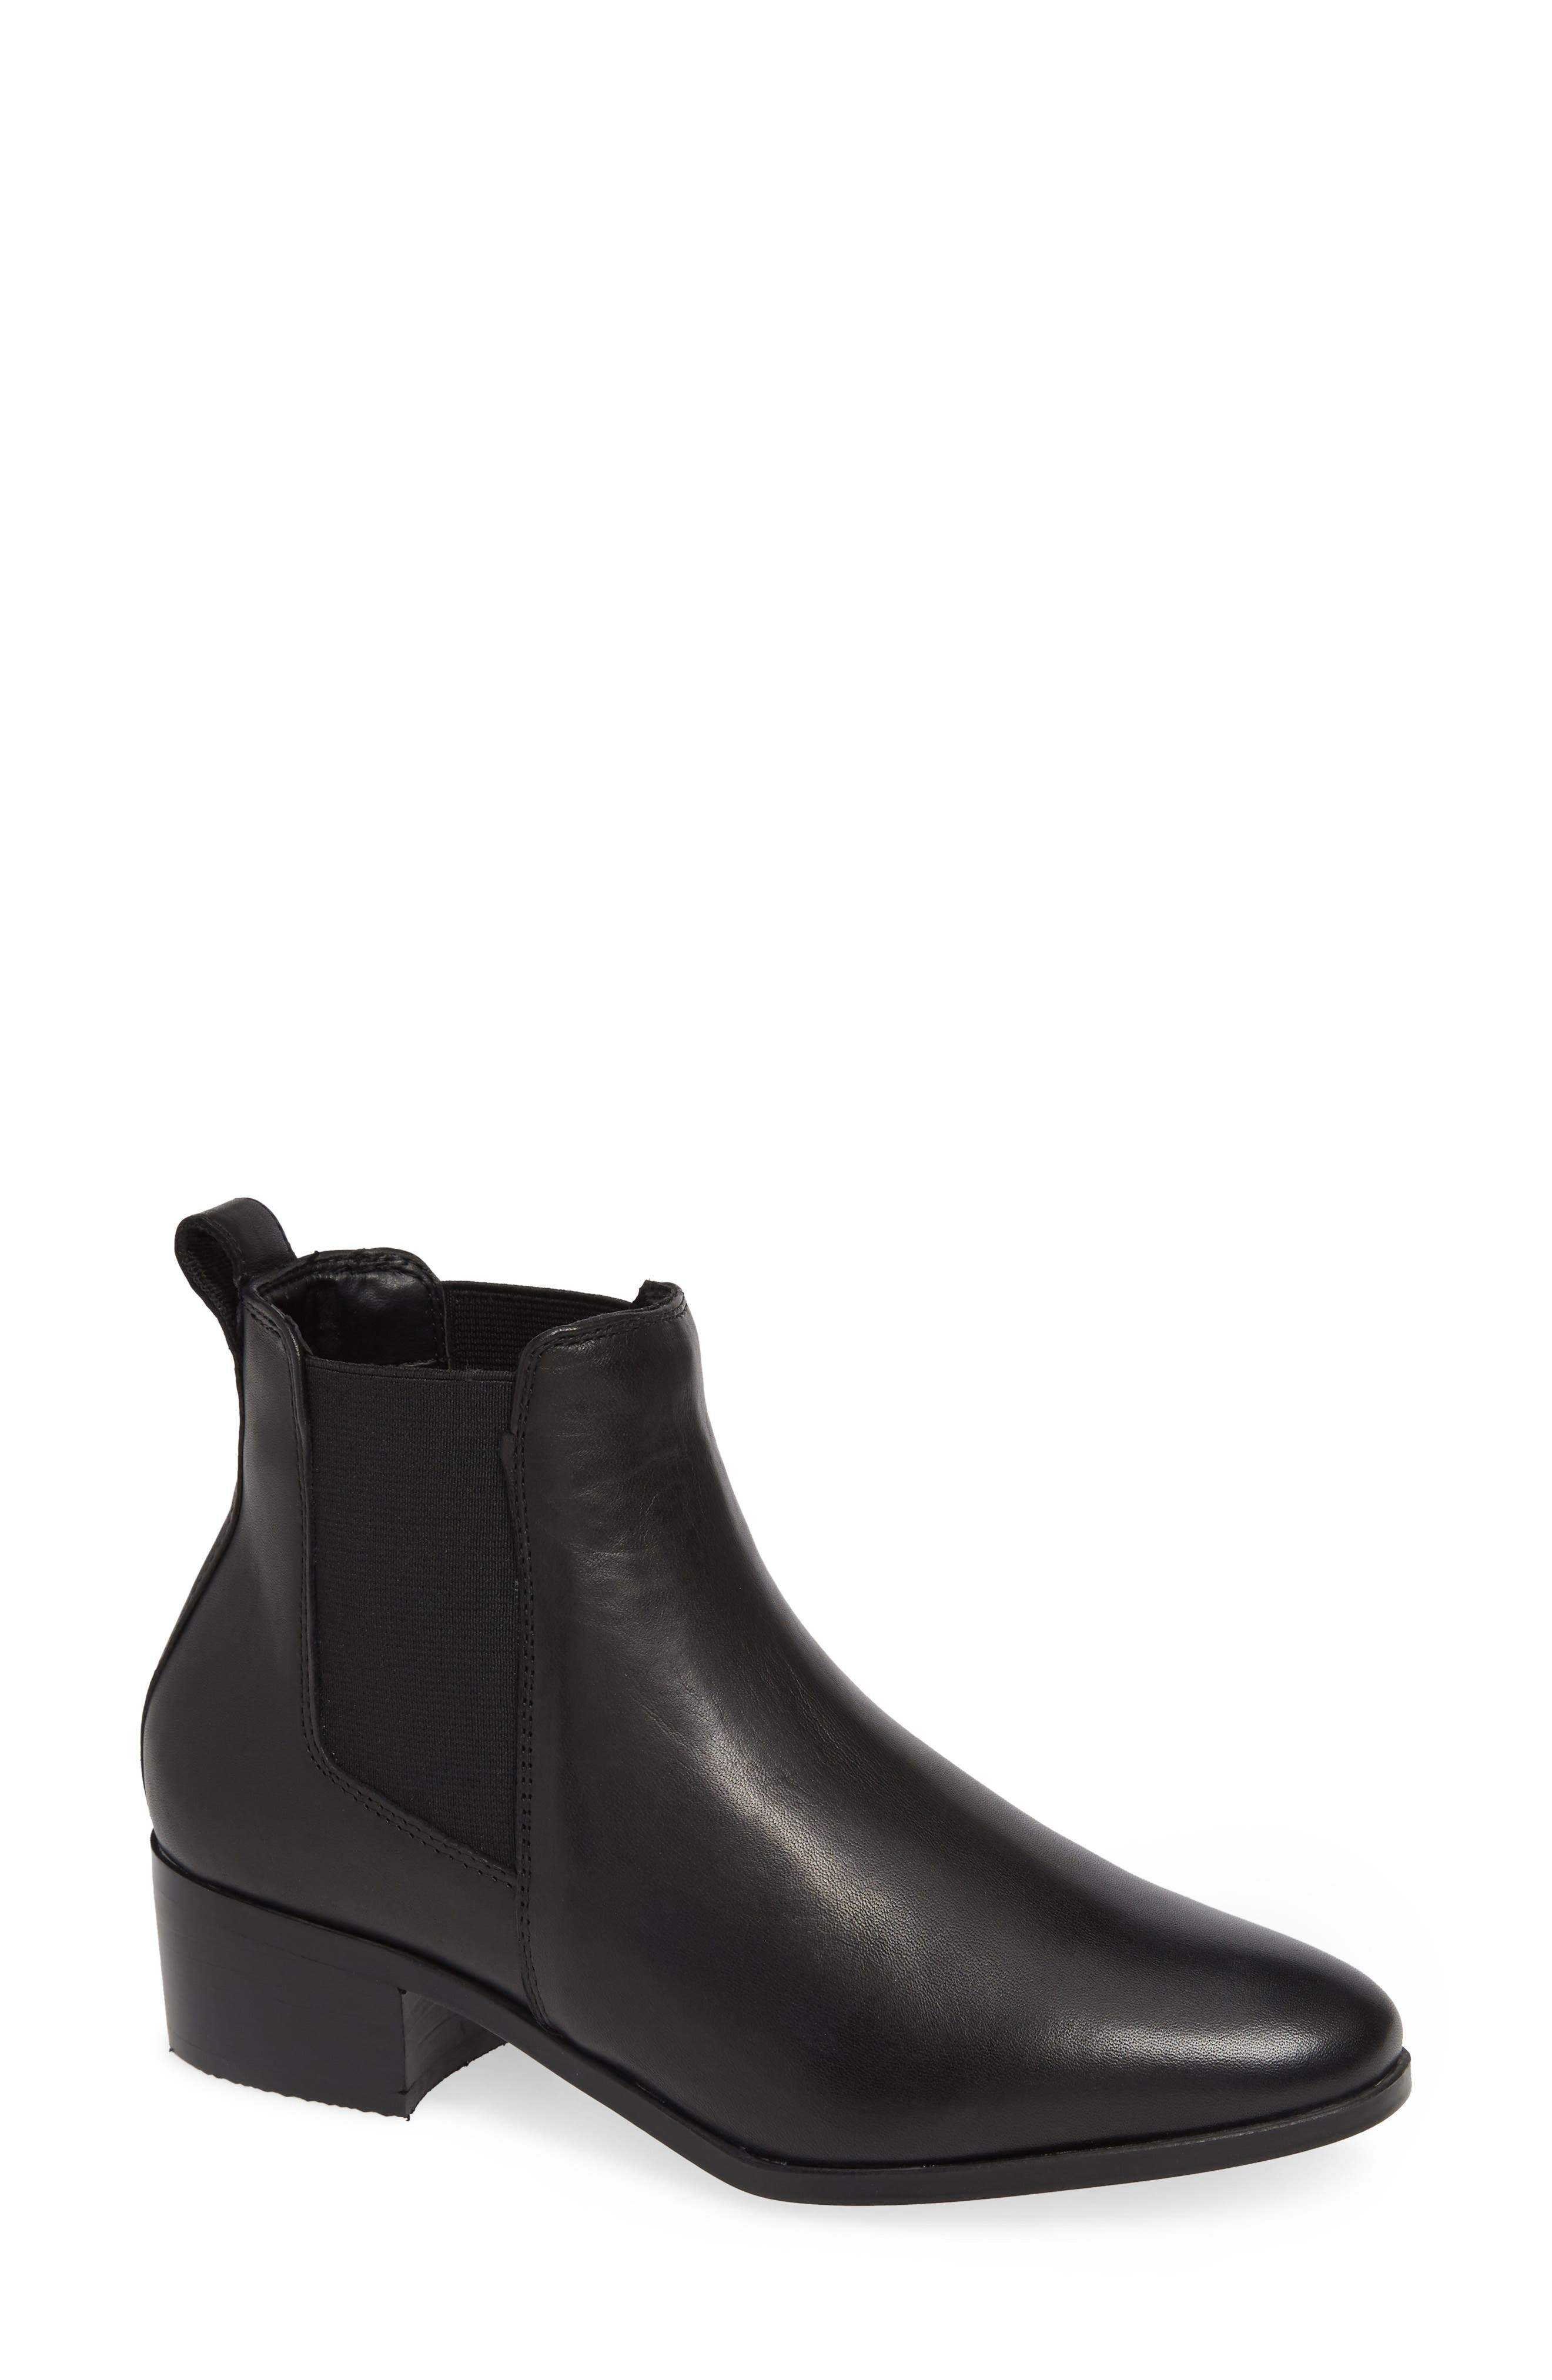 Dover Chelsea Bootie,                             Main thumbnail 1, color,                             BLACK LEATHER